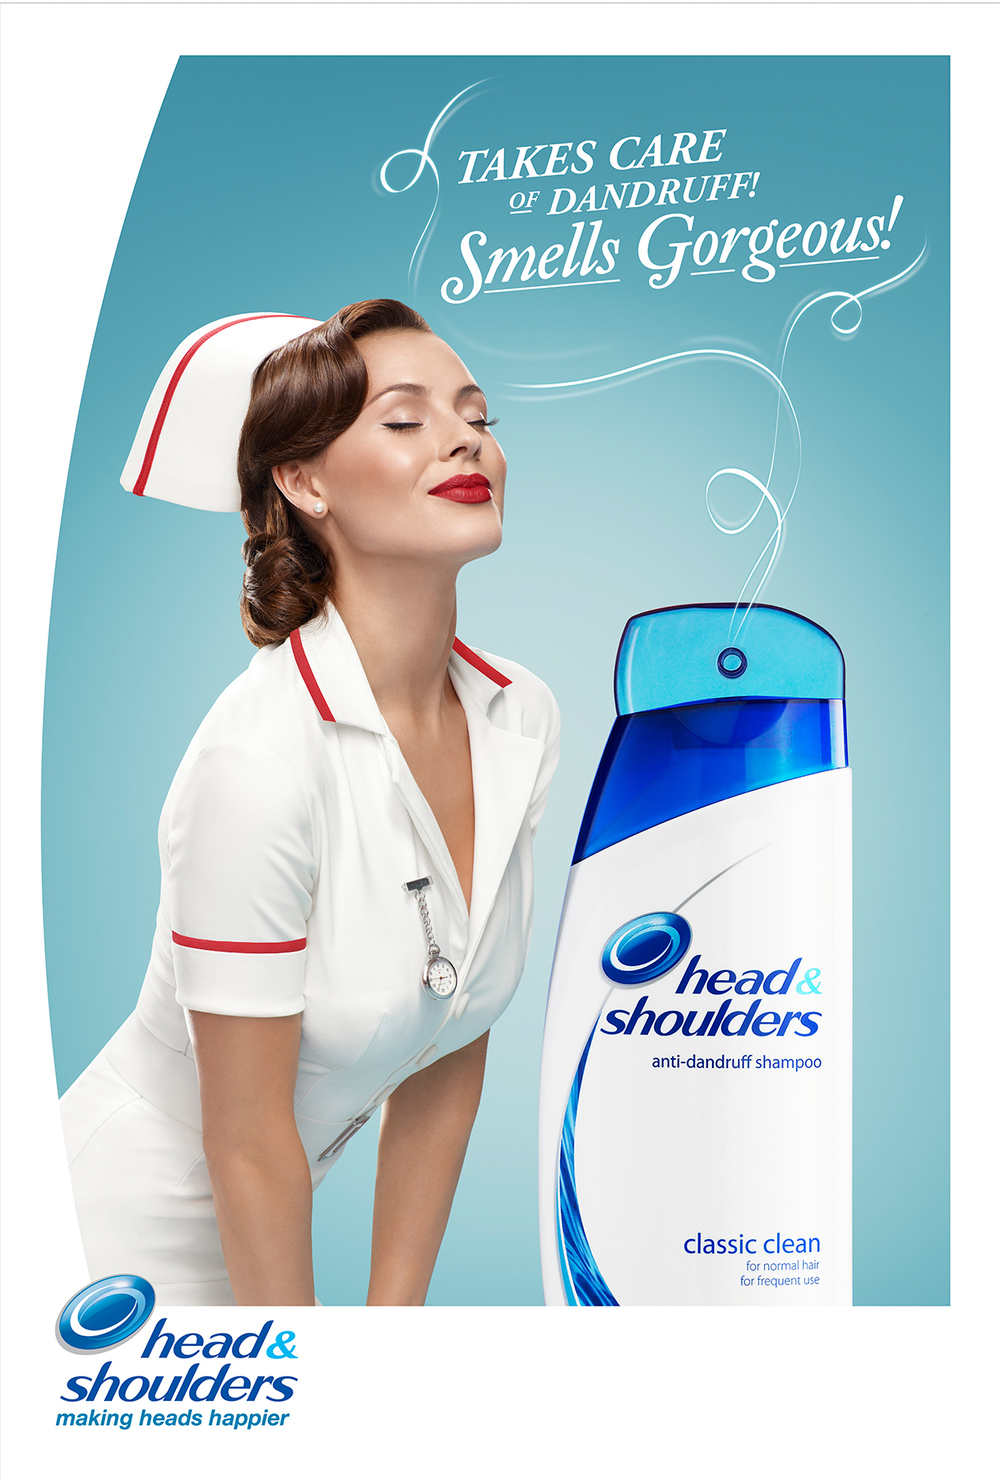 head_and_shoulders_nurse_001.jpg